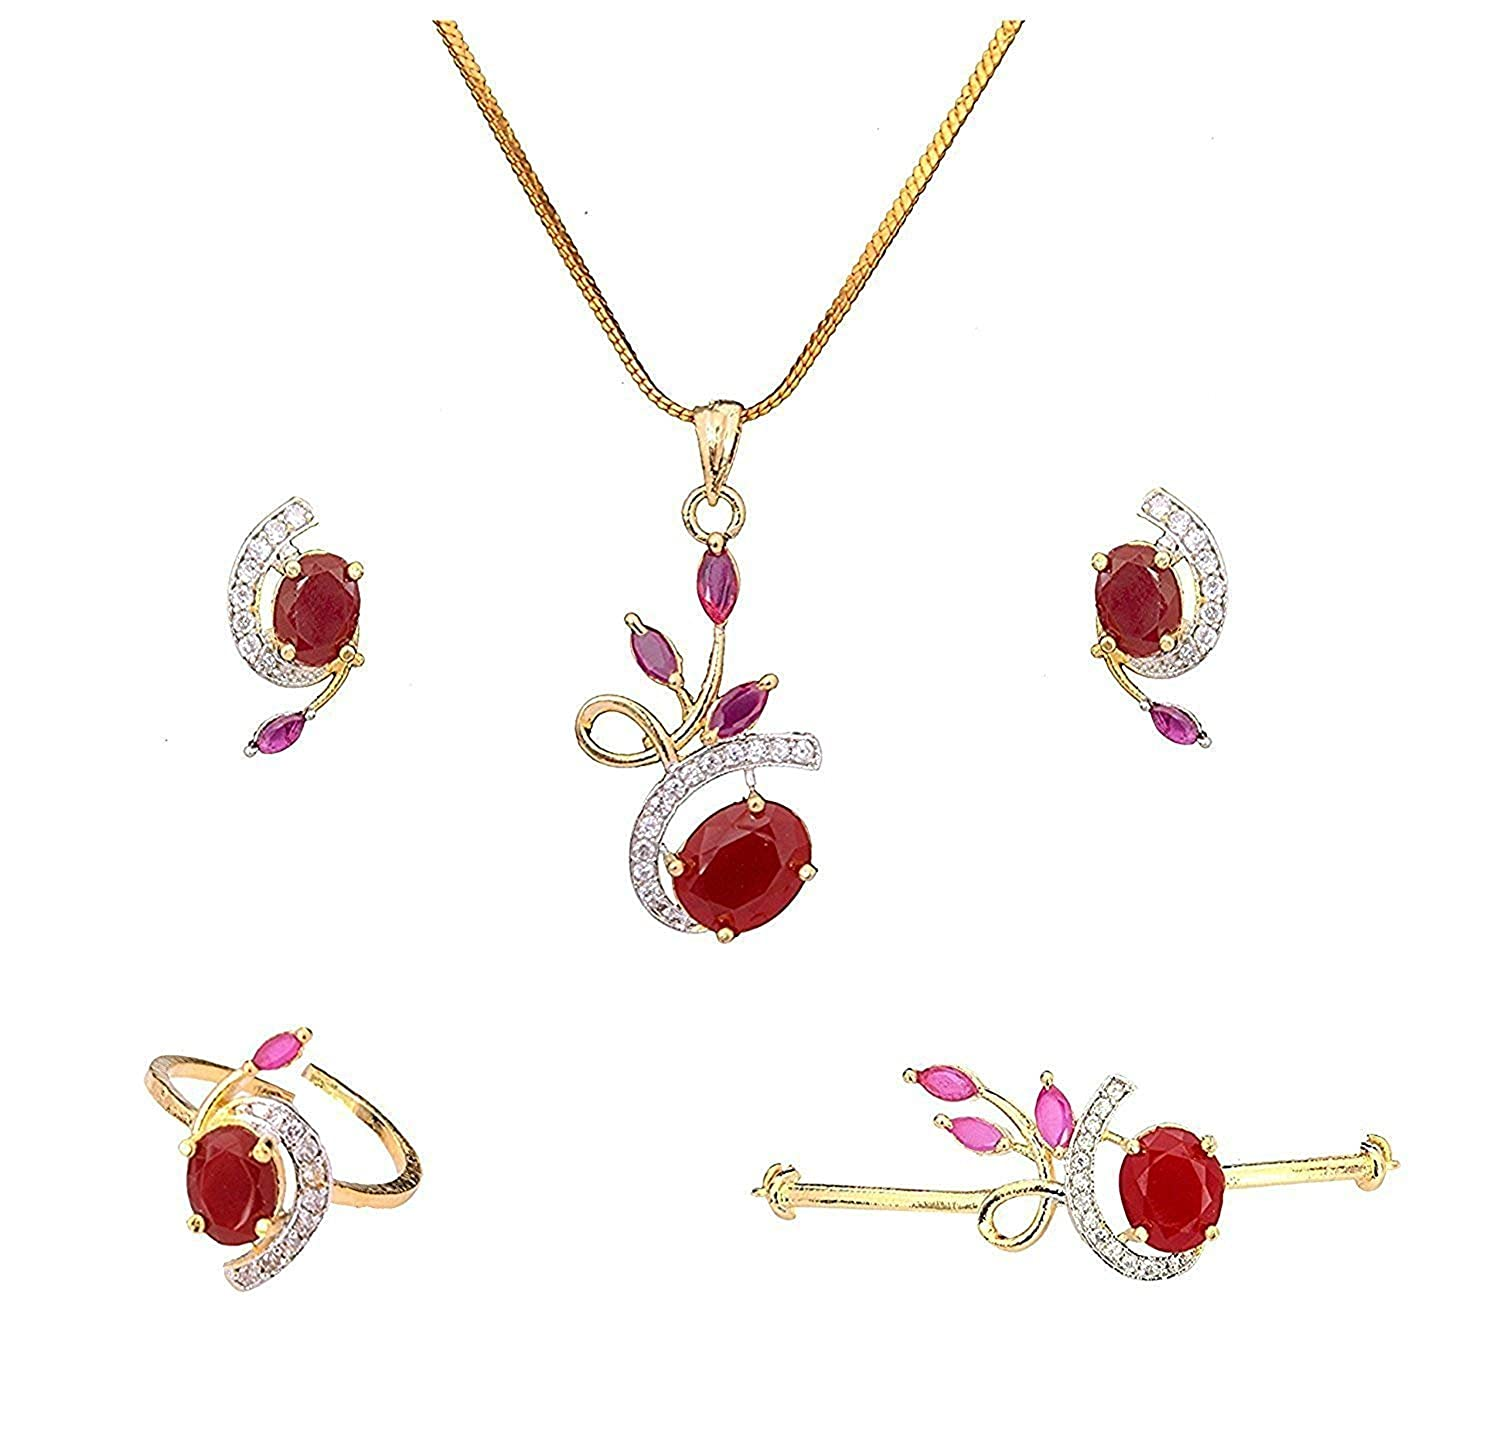 a669f185d432c Cardinal American Diamond Studded Maroon Color Combo Of Pendant Necklace  Set With Earring/Ring/Bracelet For Women/Girls